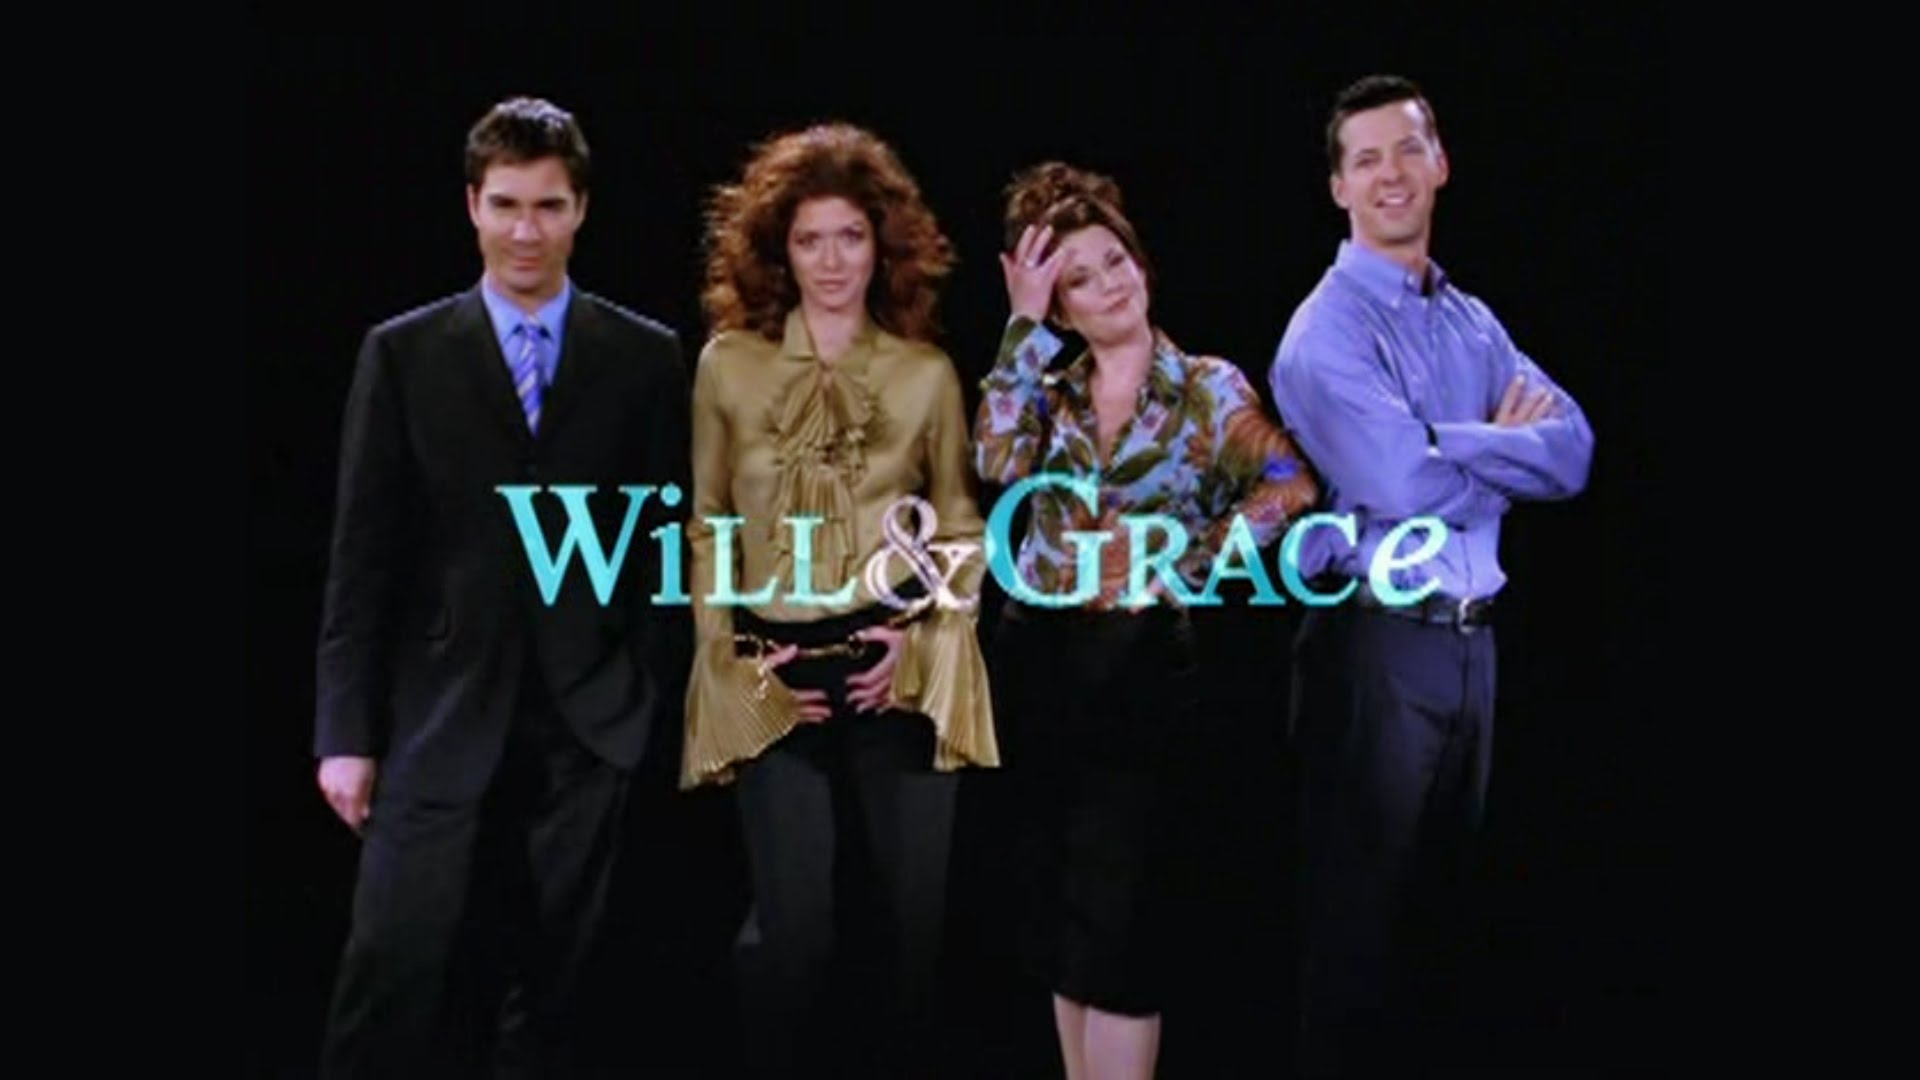 High Resolution Wallpaper | Will & Grace 1920x1080 px